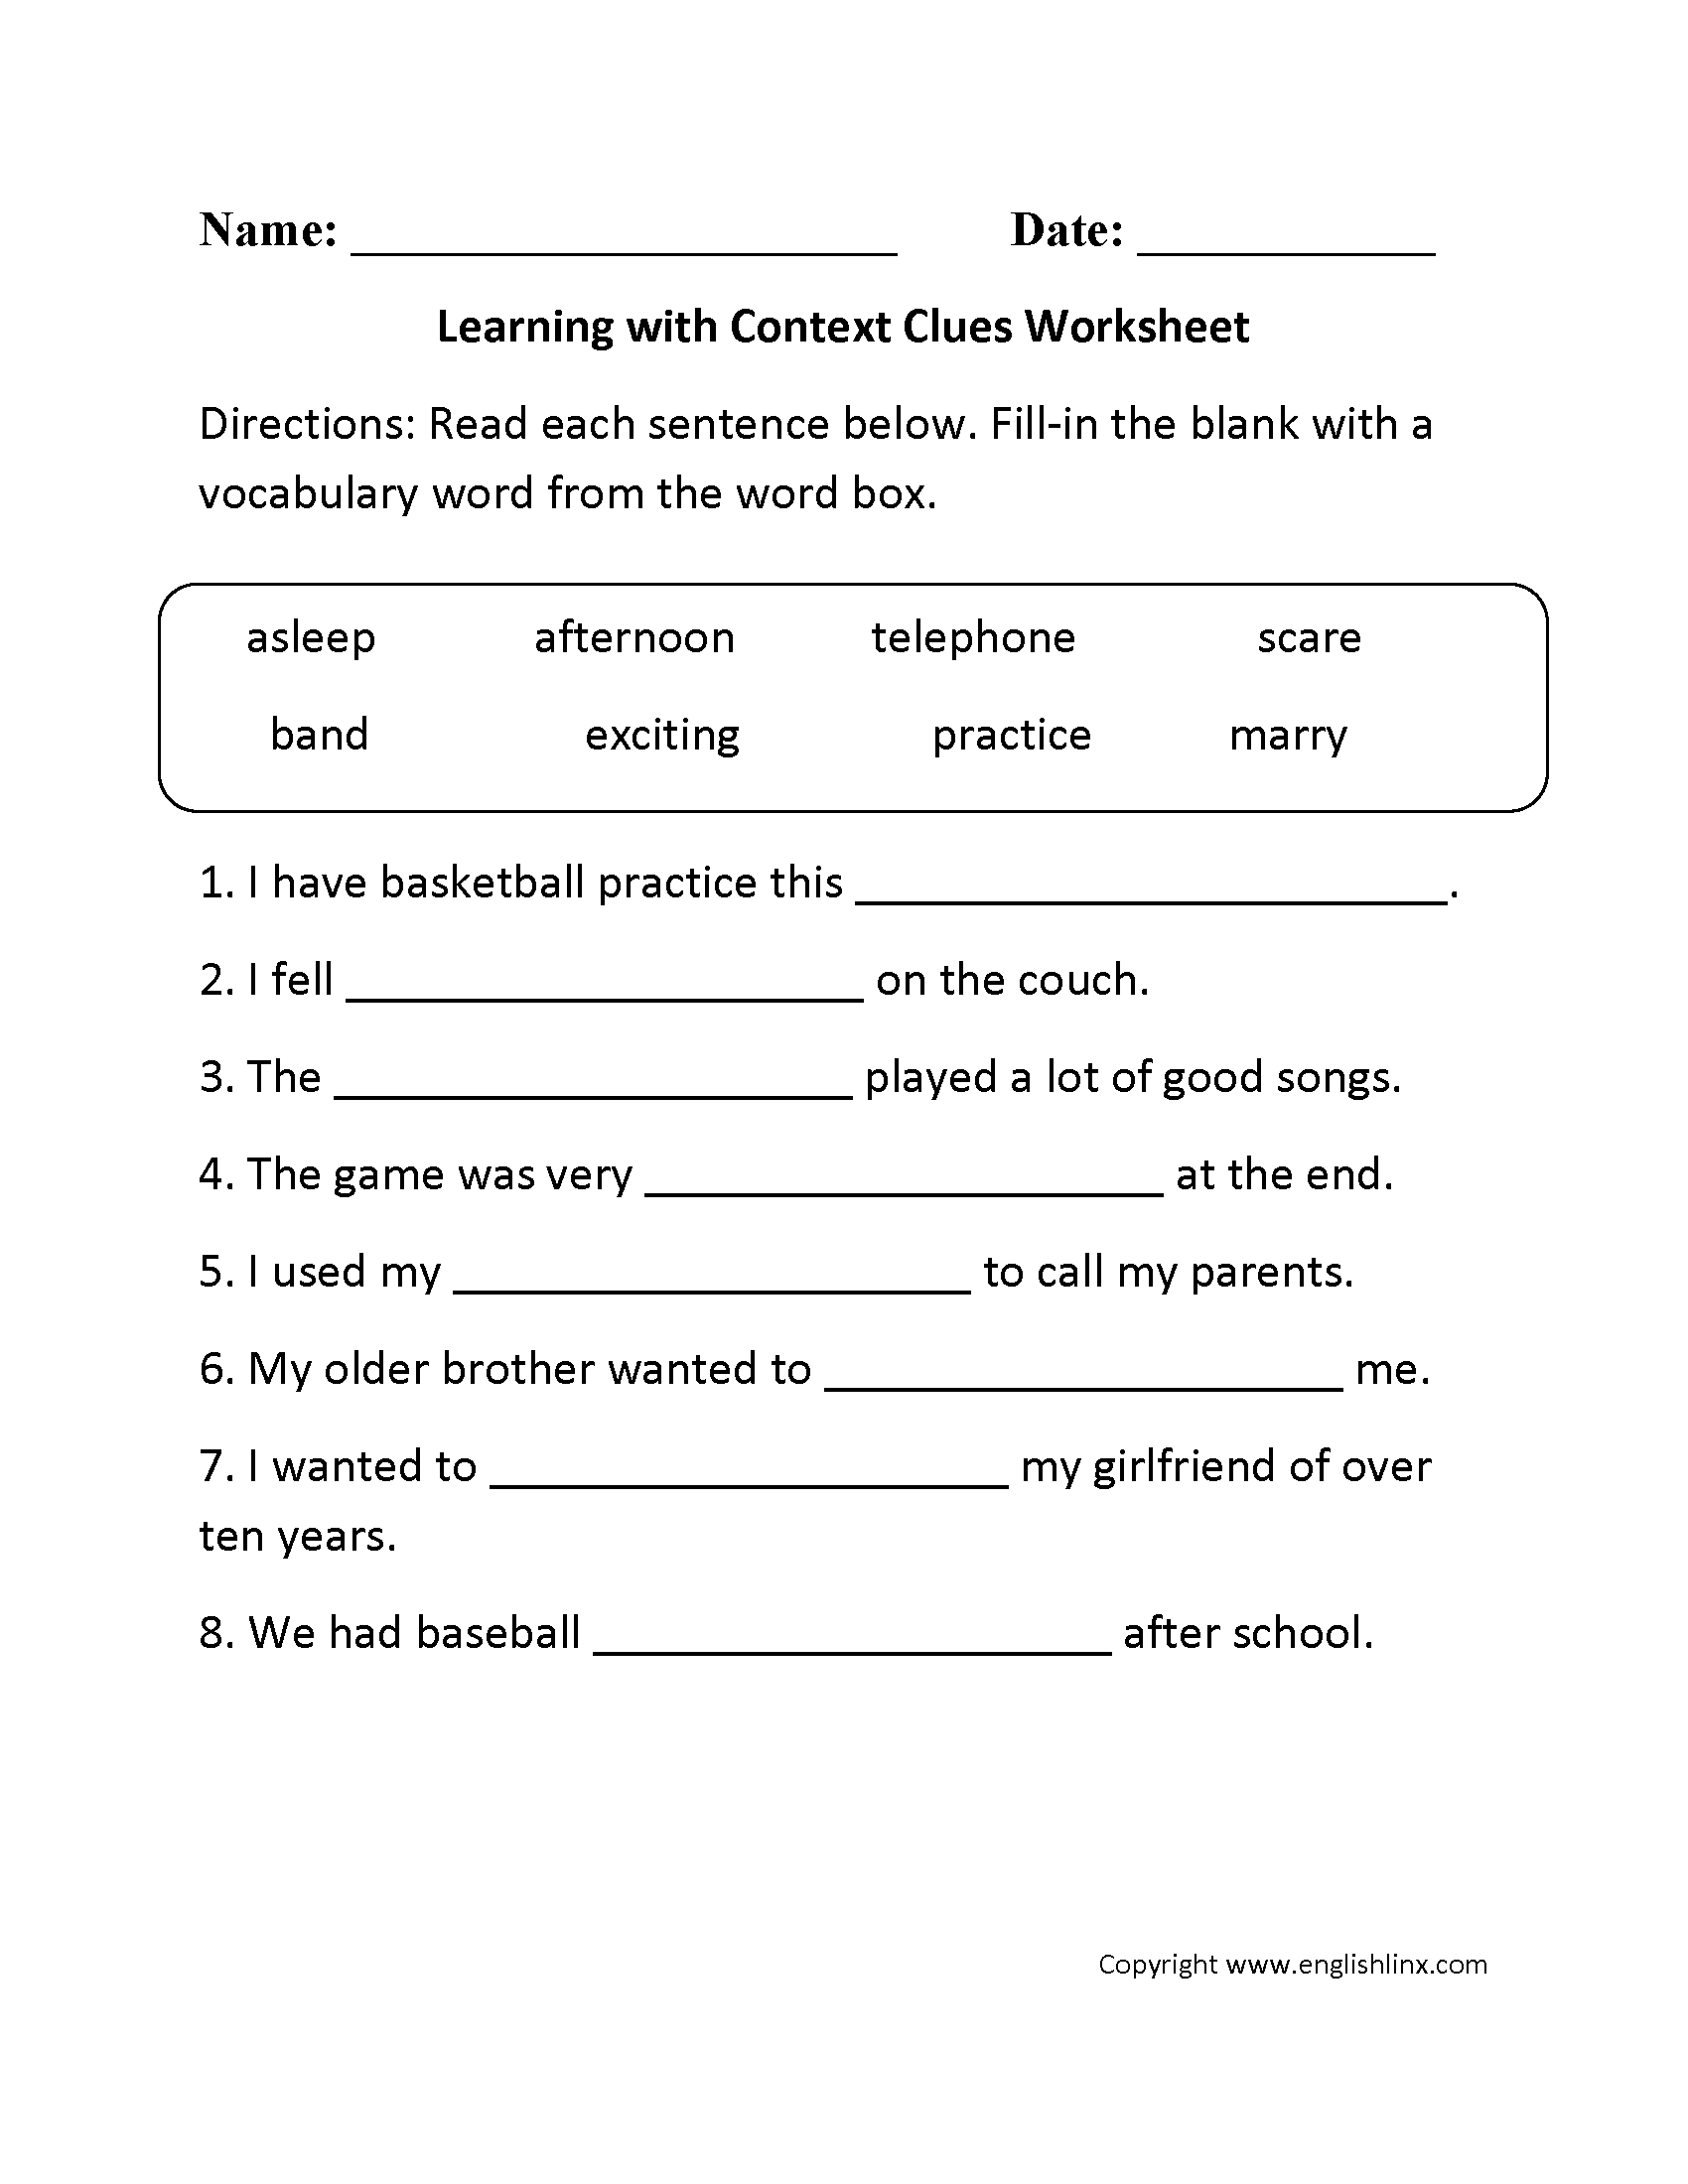 Worksheets Context Clues Worksheets 4th Grade reading worksheets context clues intermediate worksheets